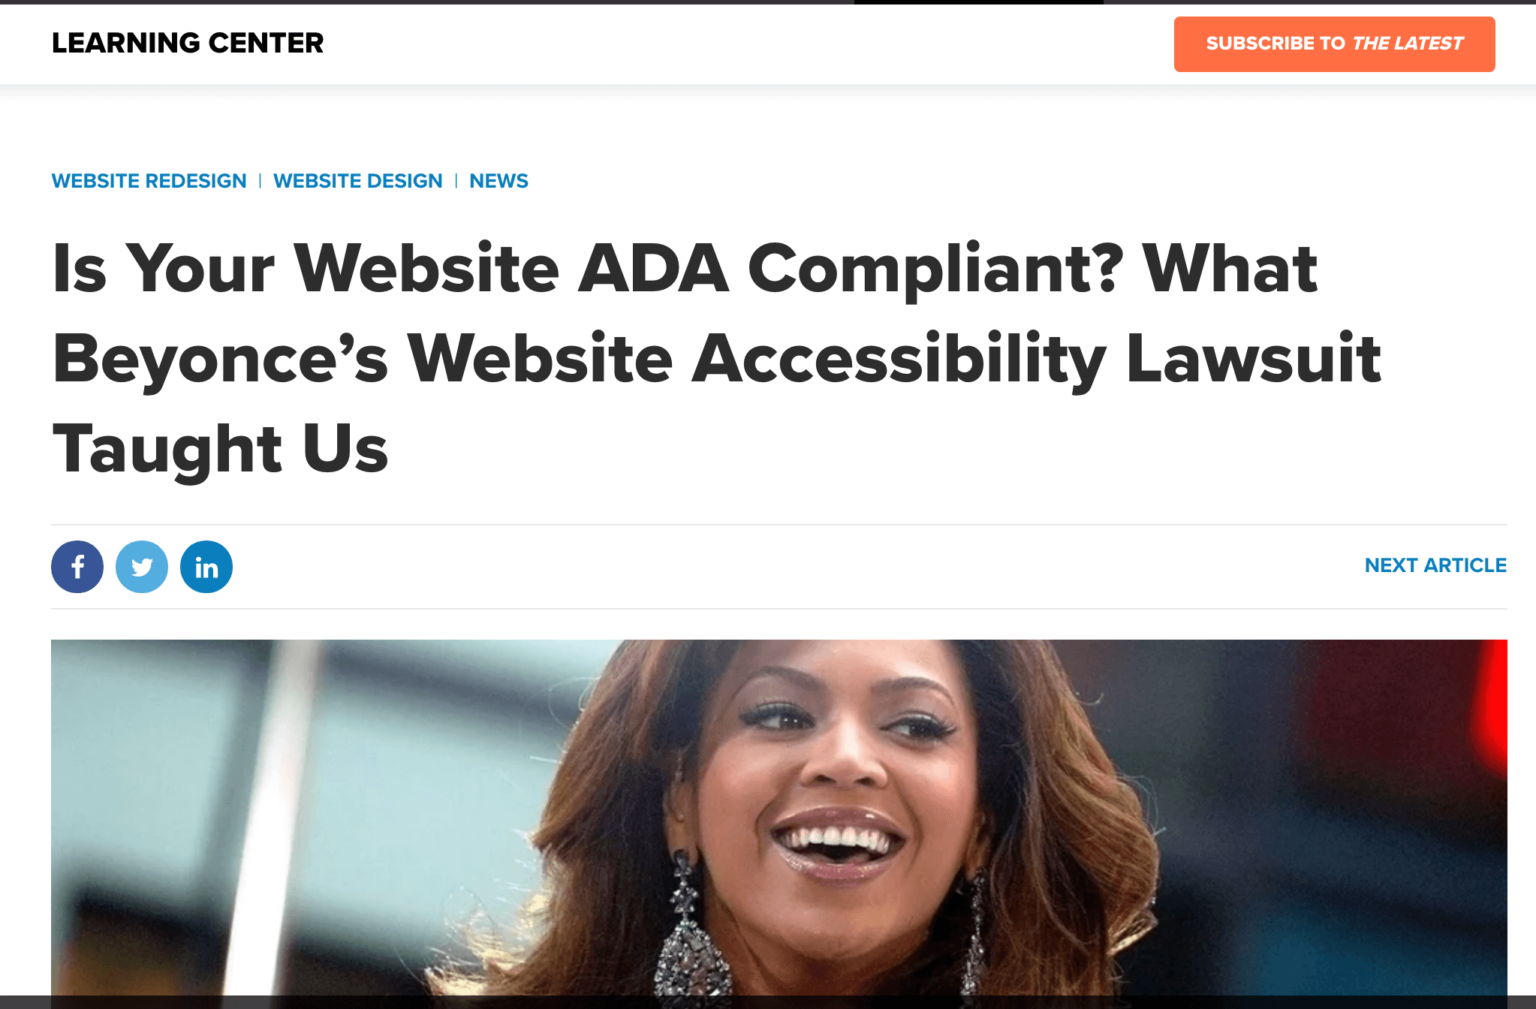 What Beyonce's Accessibility Lawsuit Taught Us